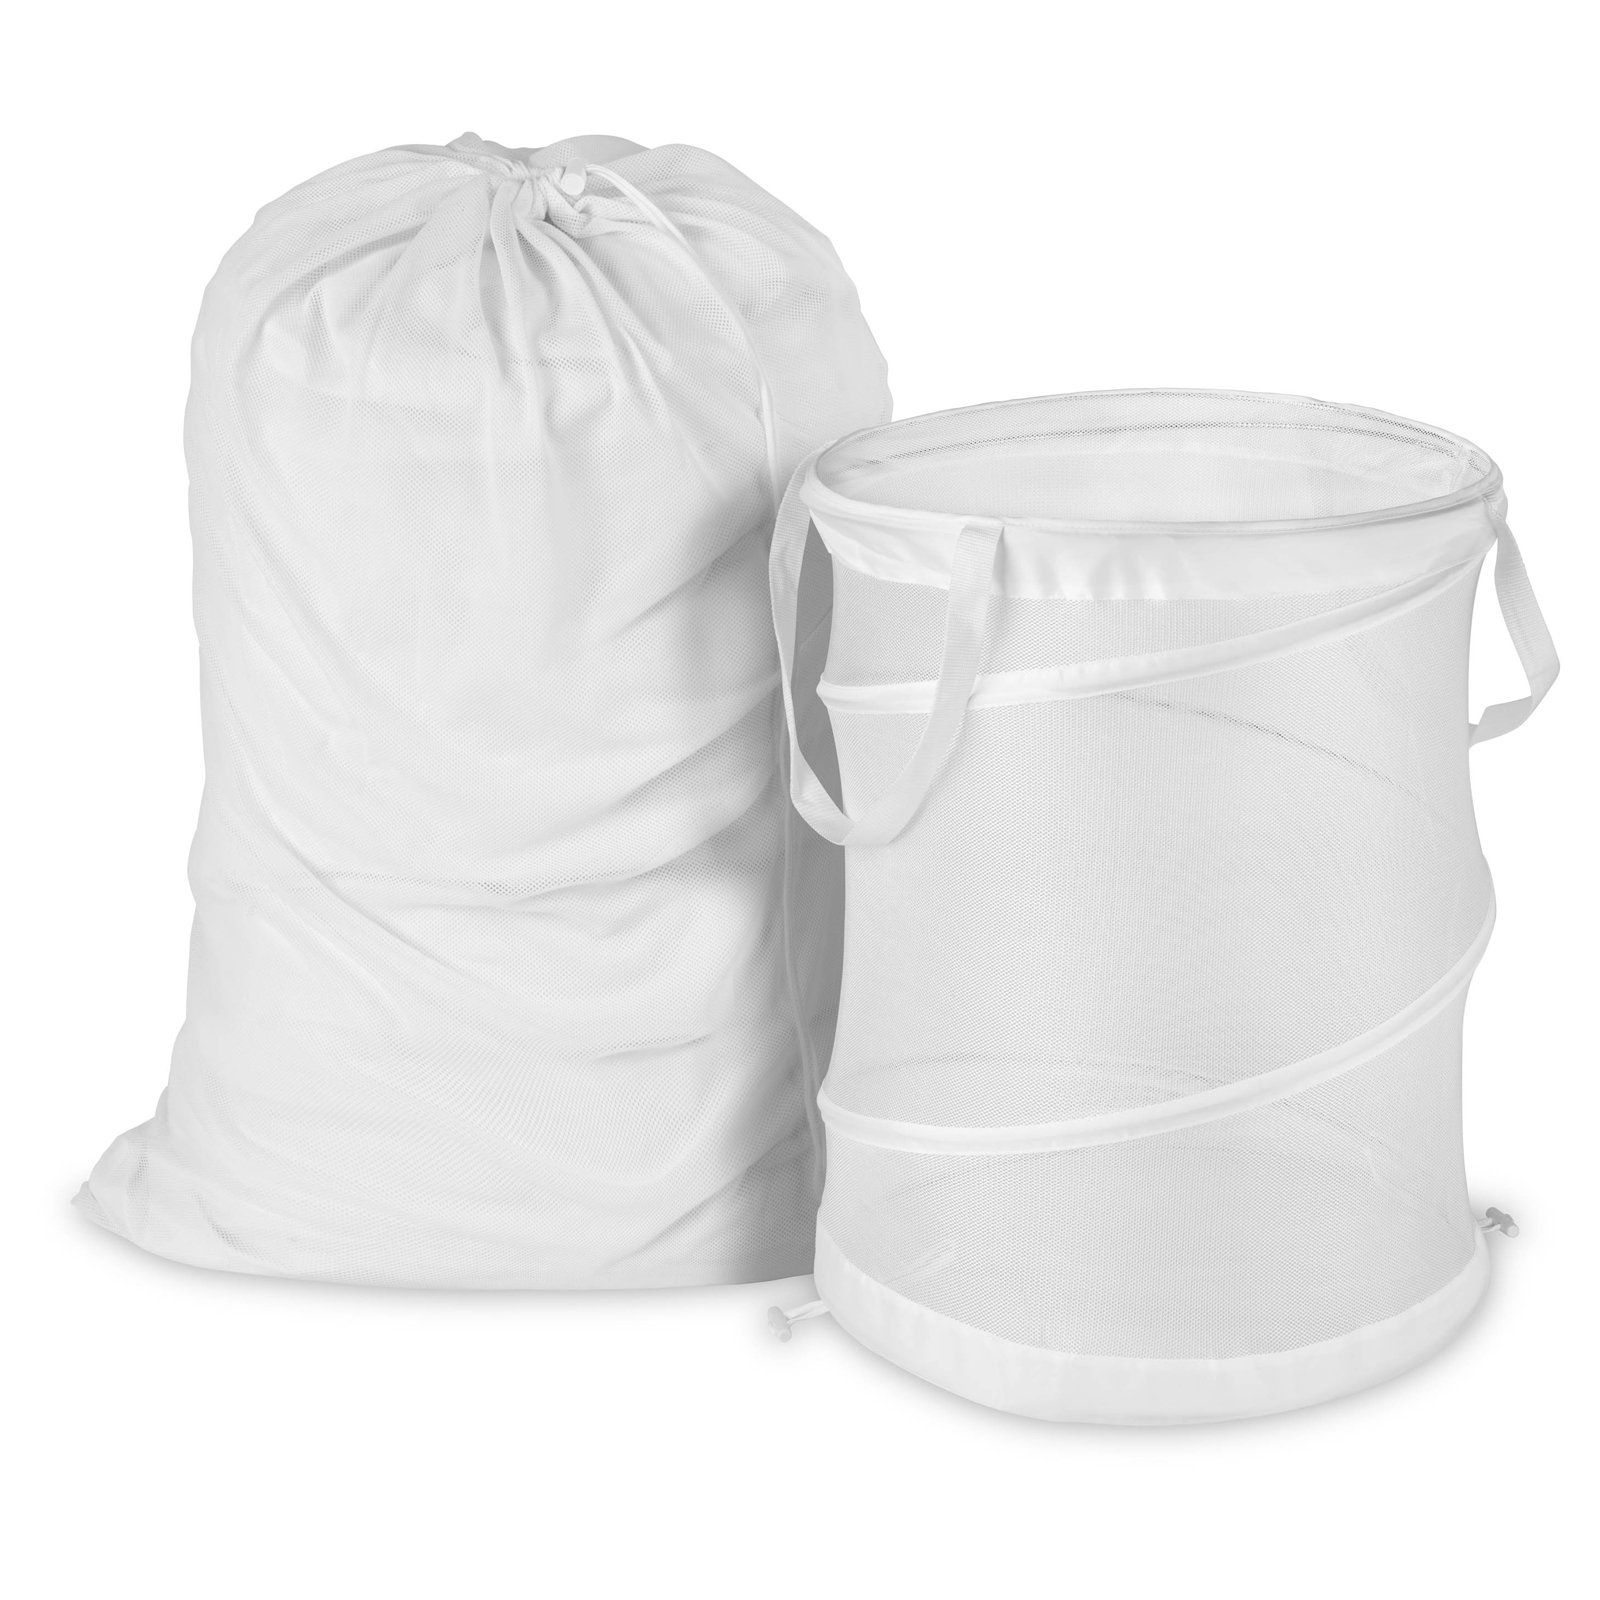 Laundry Bags At Walmart Interesting Honey Can Do Mesh Laundry Bag And Hamper Kit  Ldyx03017  Products